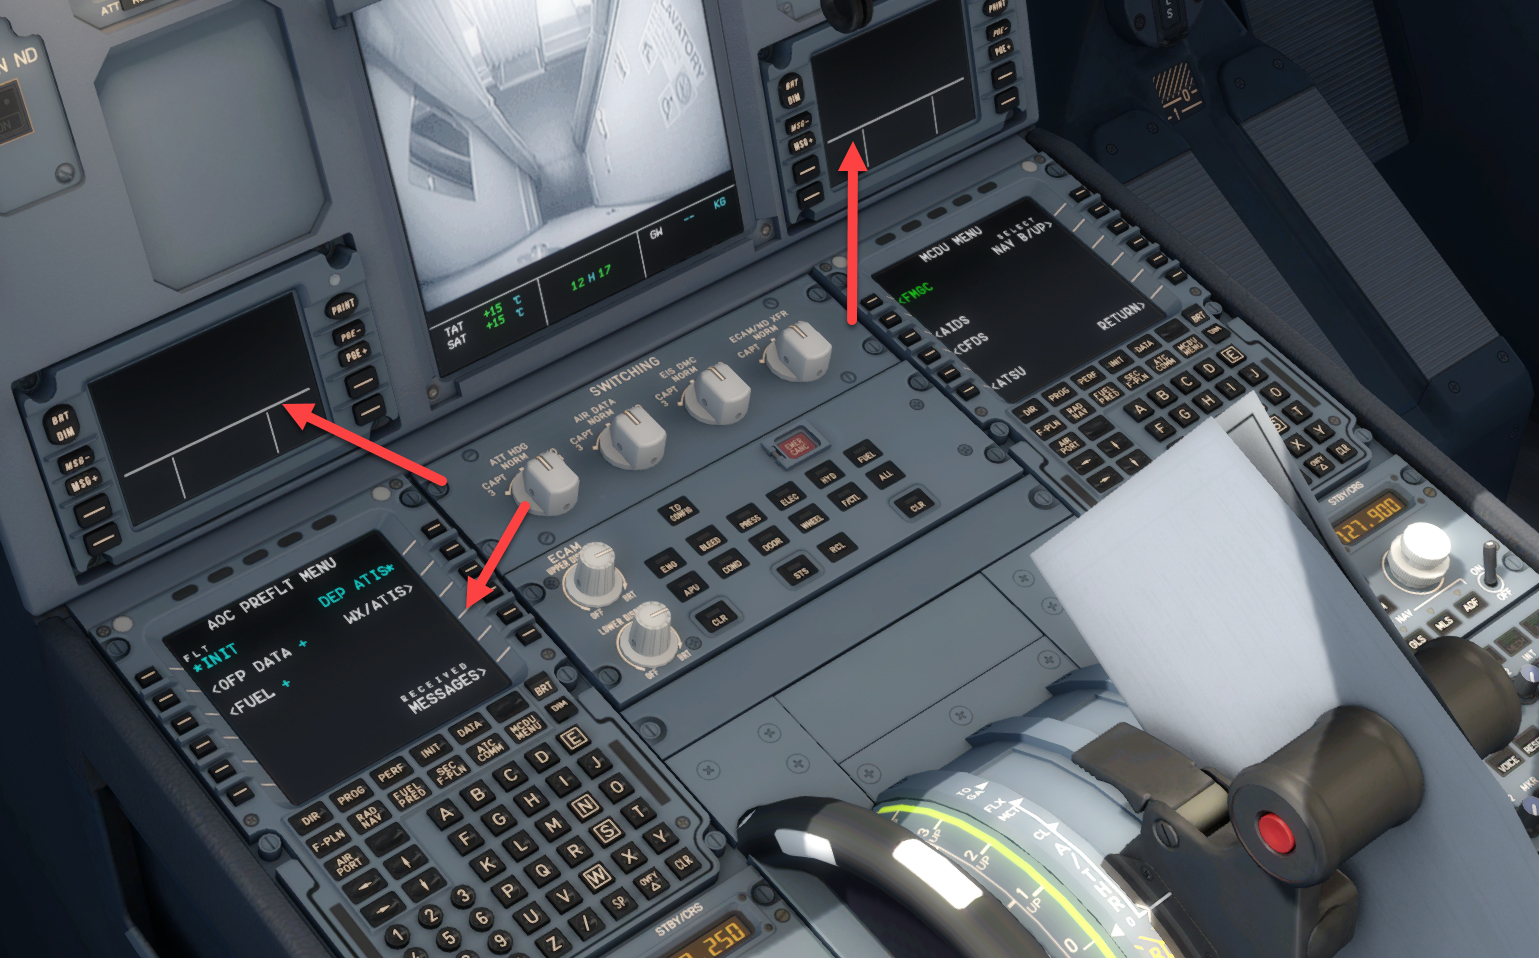 Aerosoft's Airbus To Be Tier 1 in PMDG's Global Flight Operations